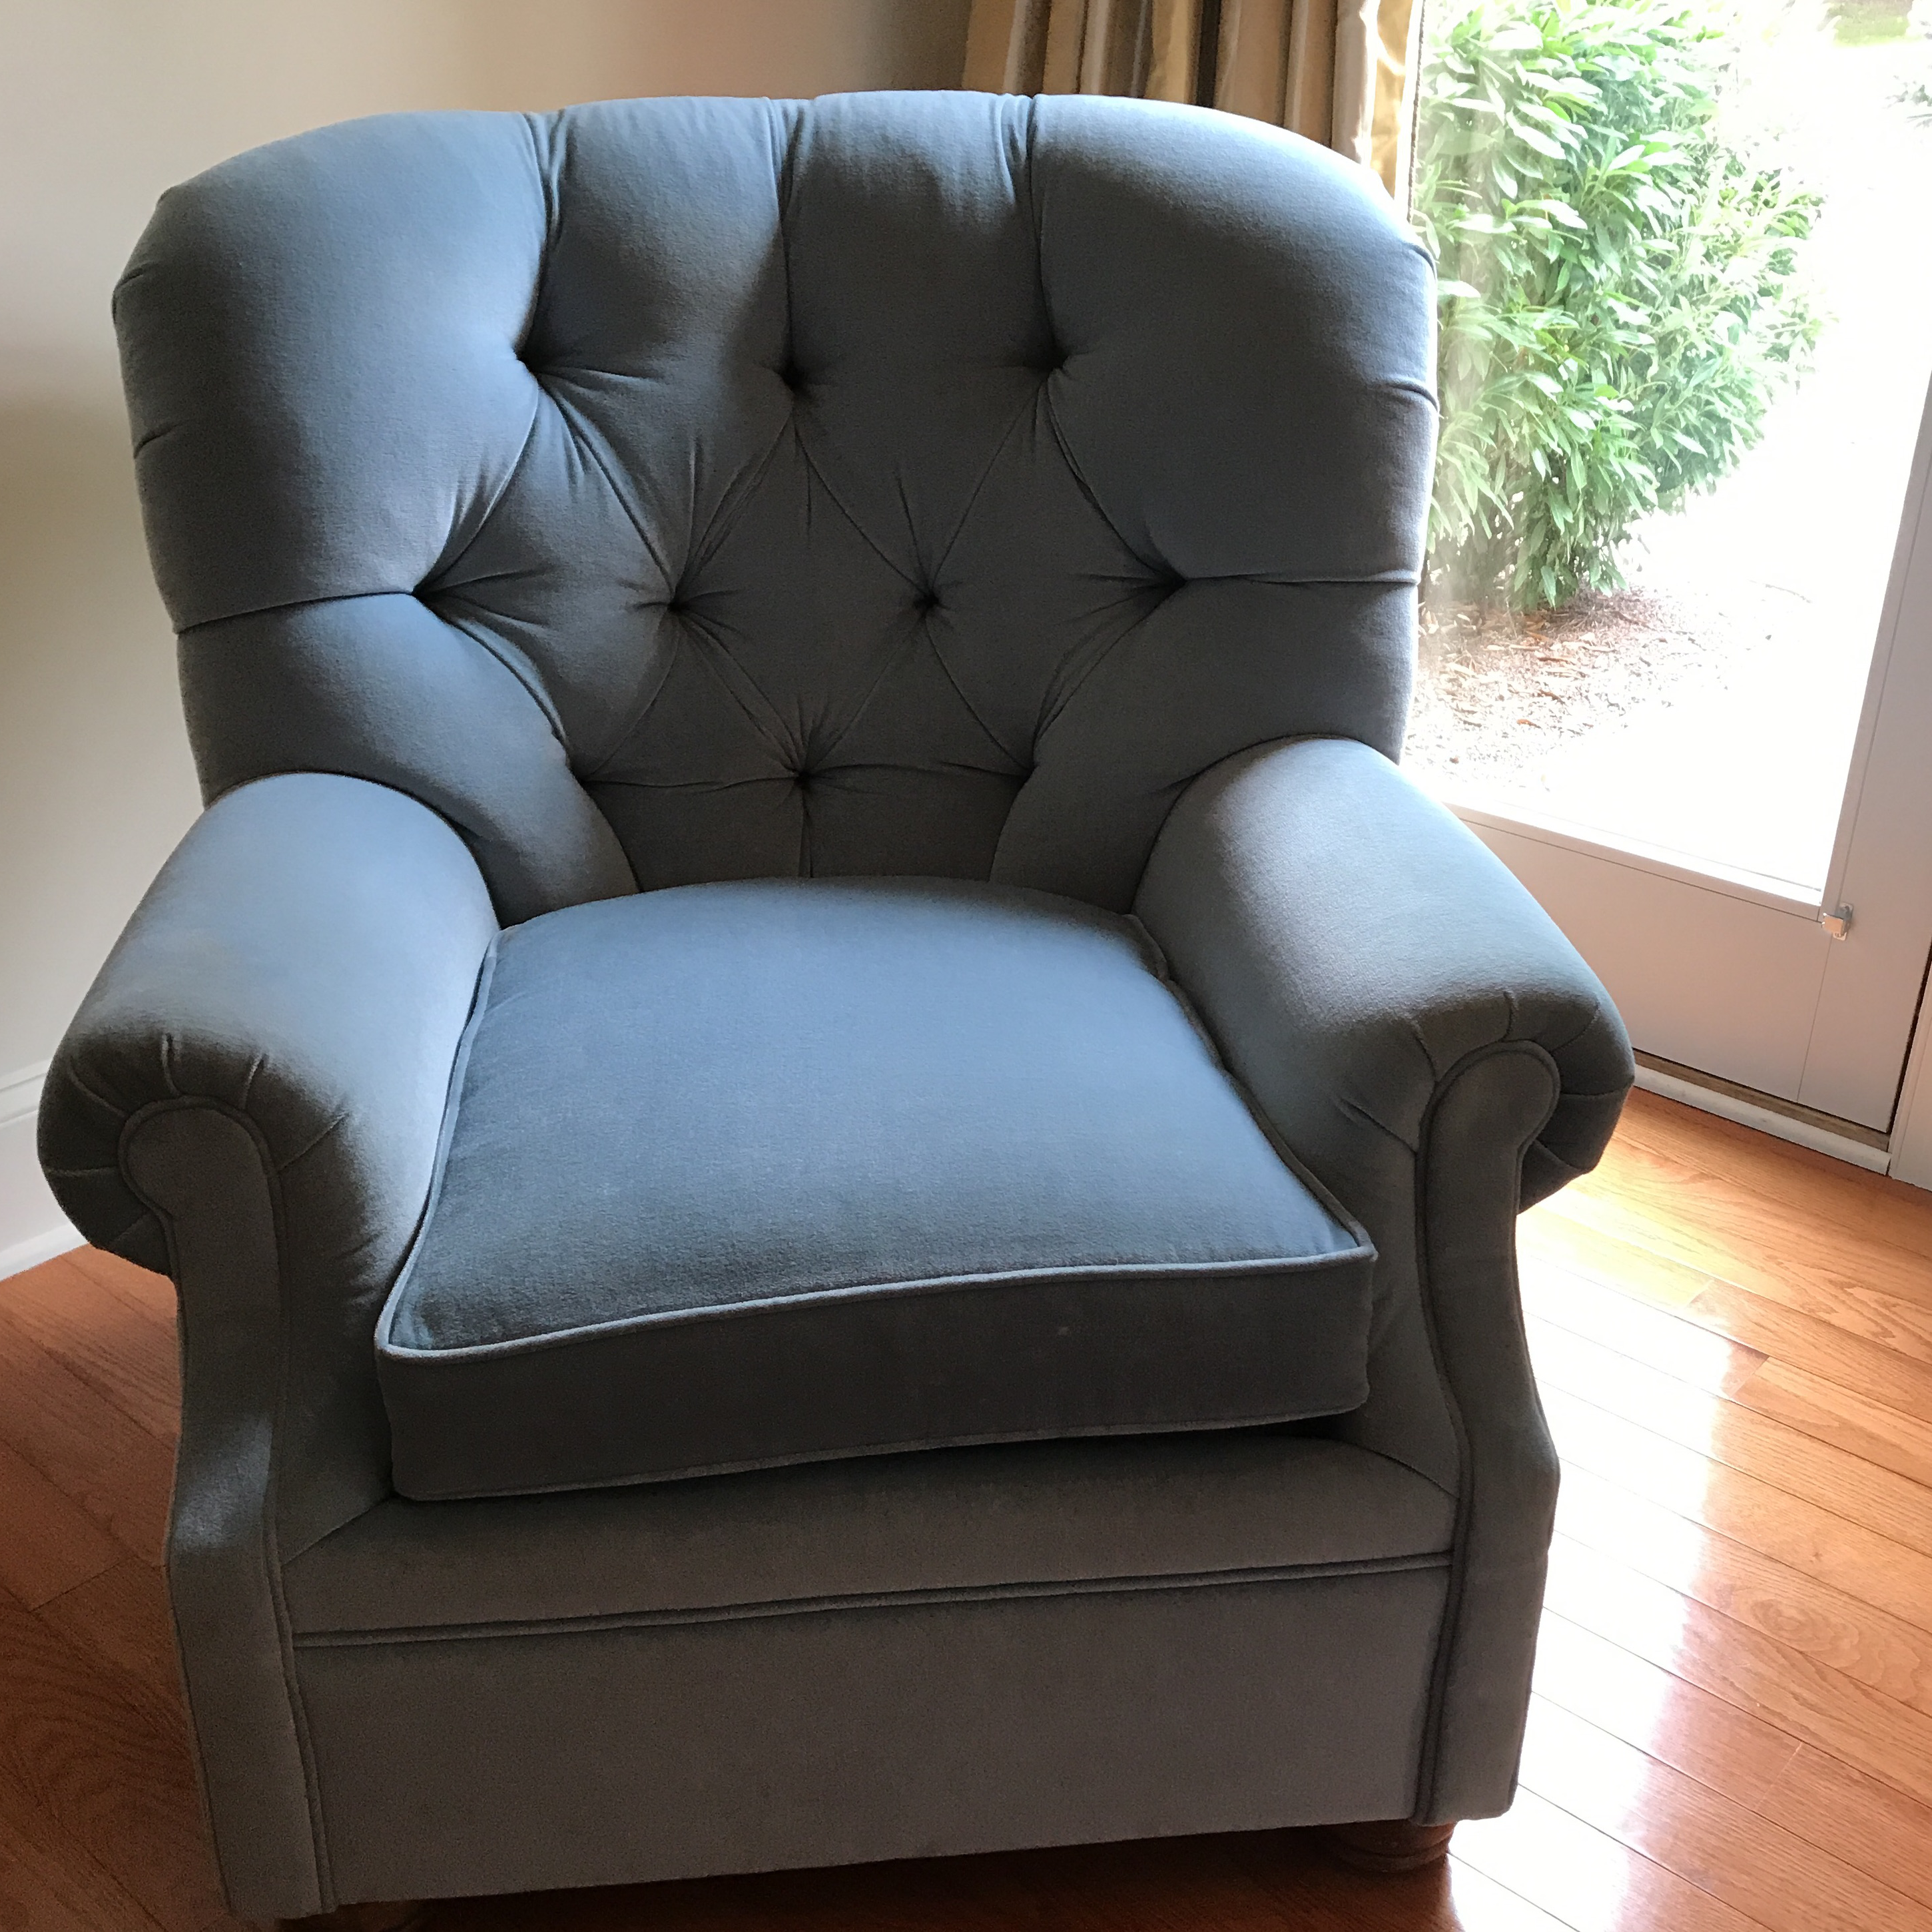 Blue Velvet Tufted Armchair For Sale. This Is An Extremely Comfortable Chair  Itu0027s So Soft And Well Made